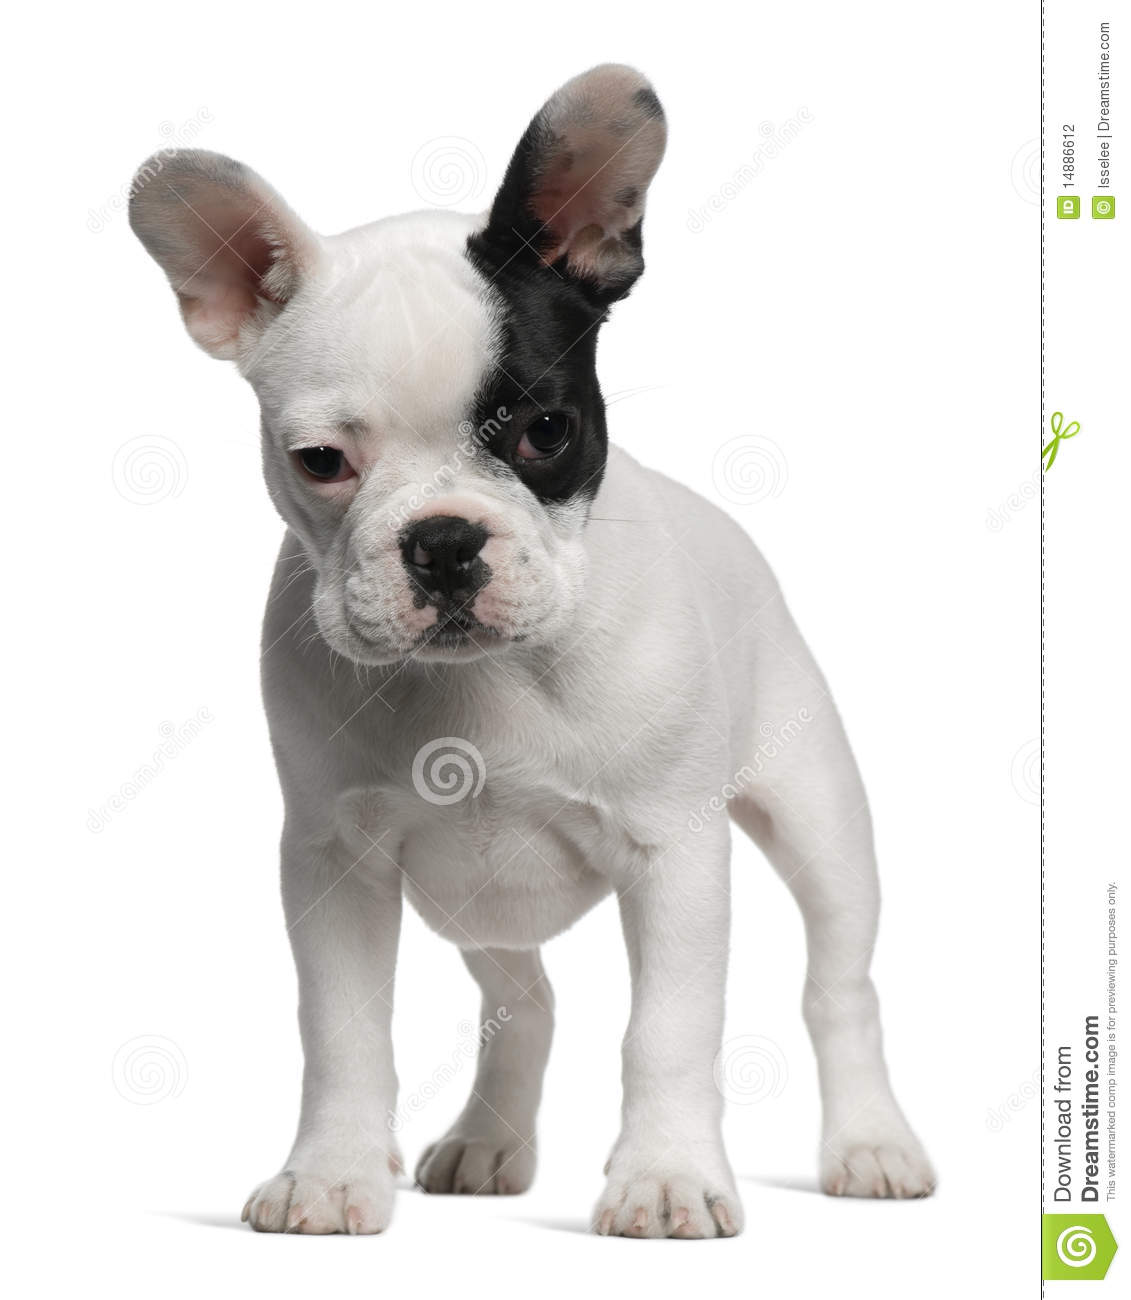 french bulldog puppy 3 months old standing stock photo